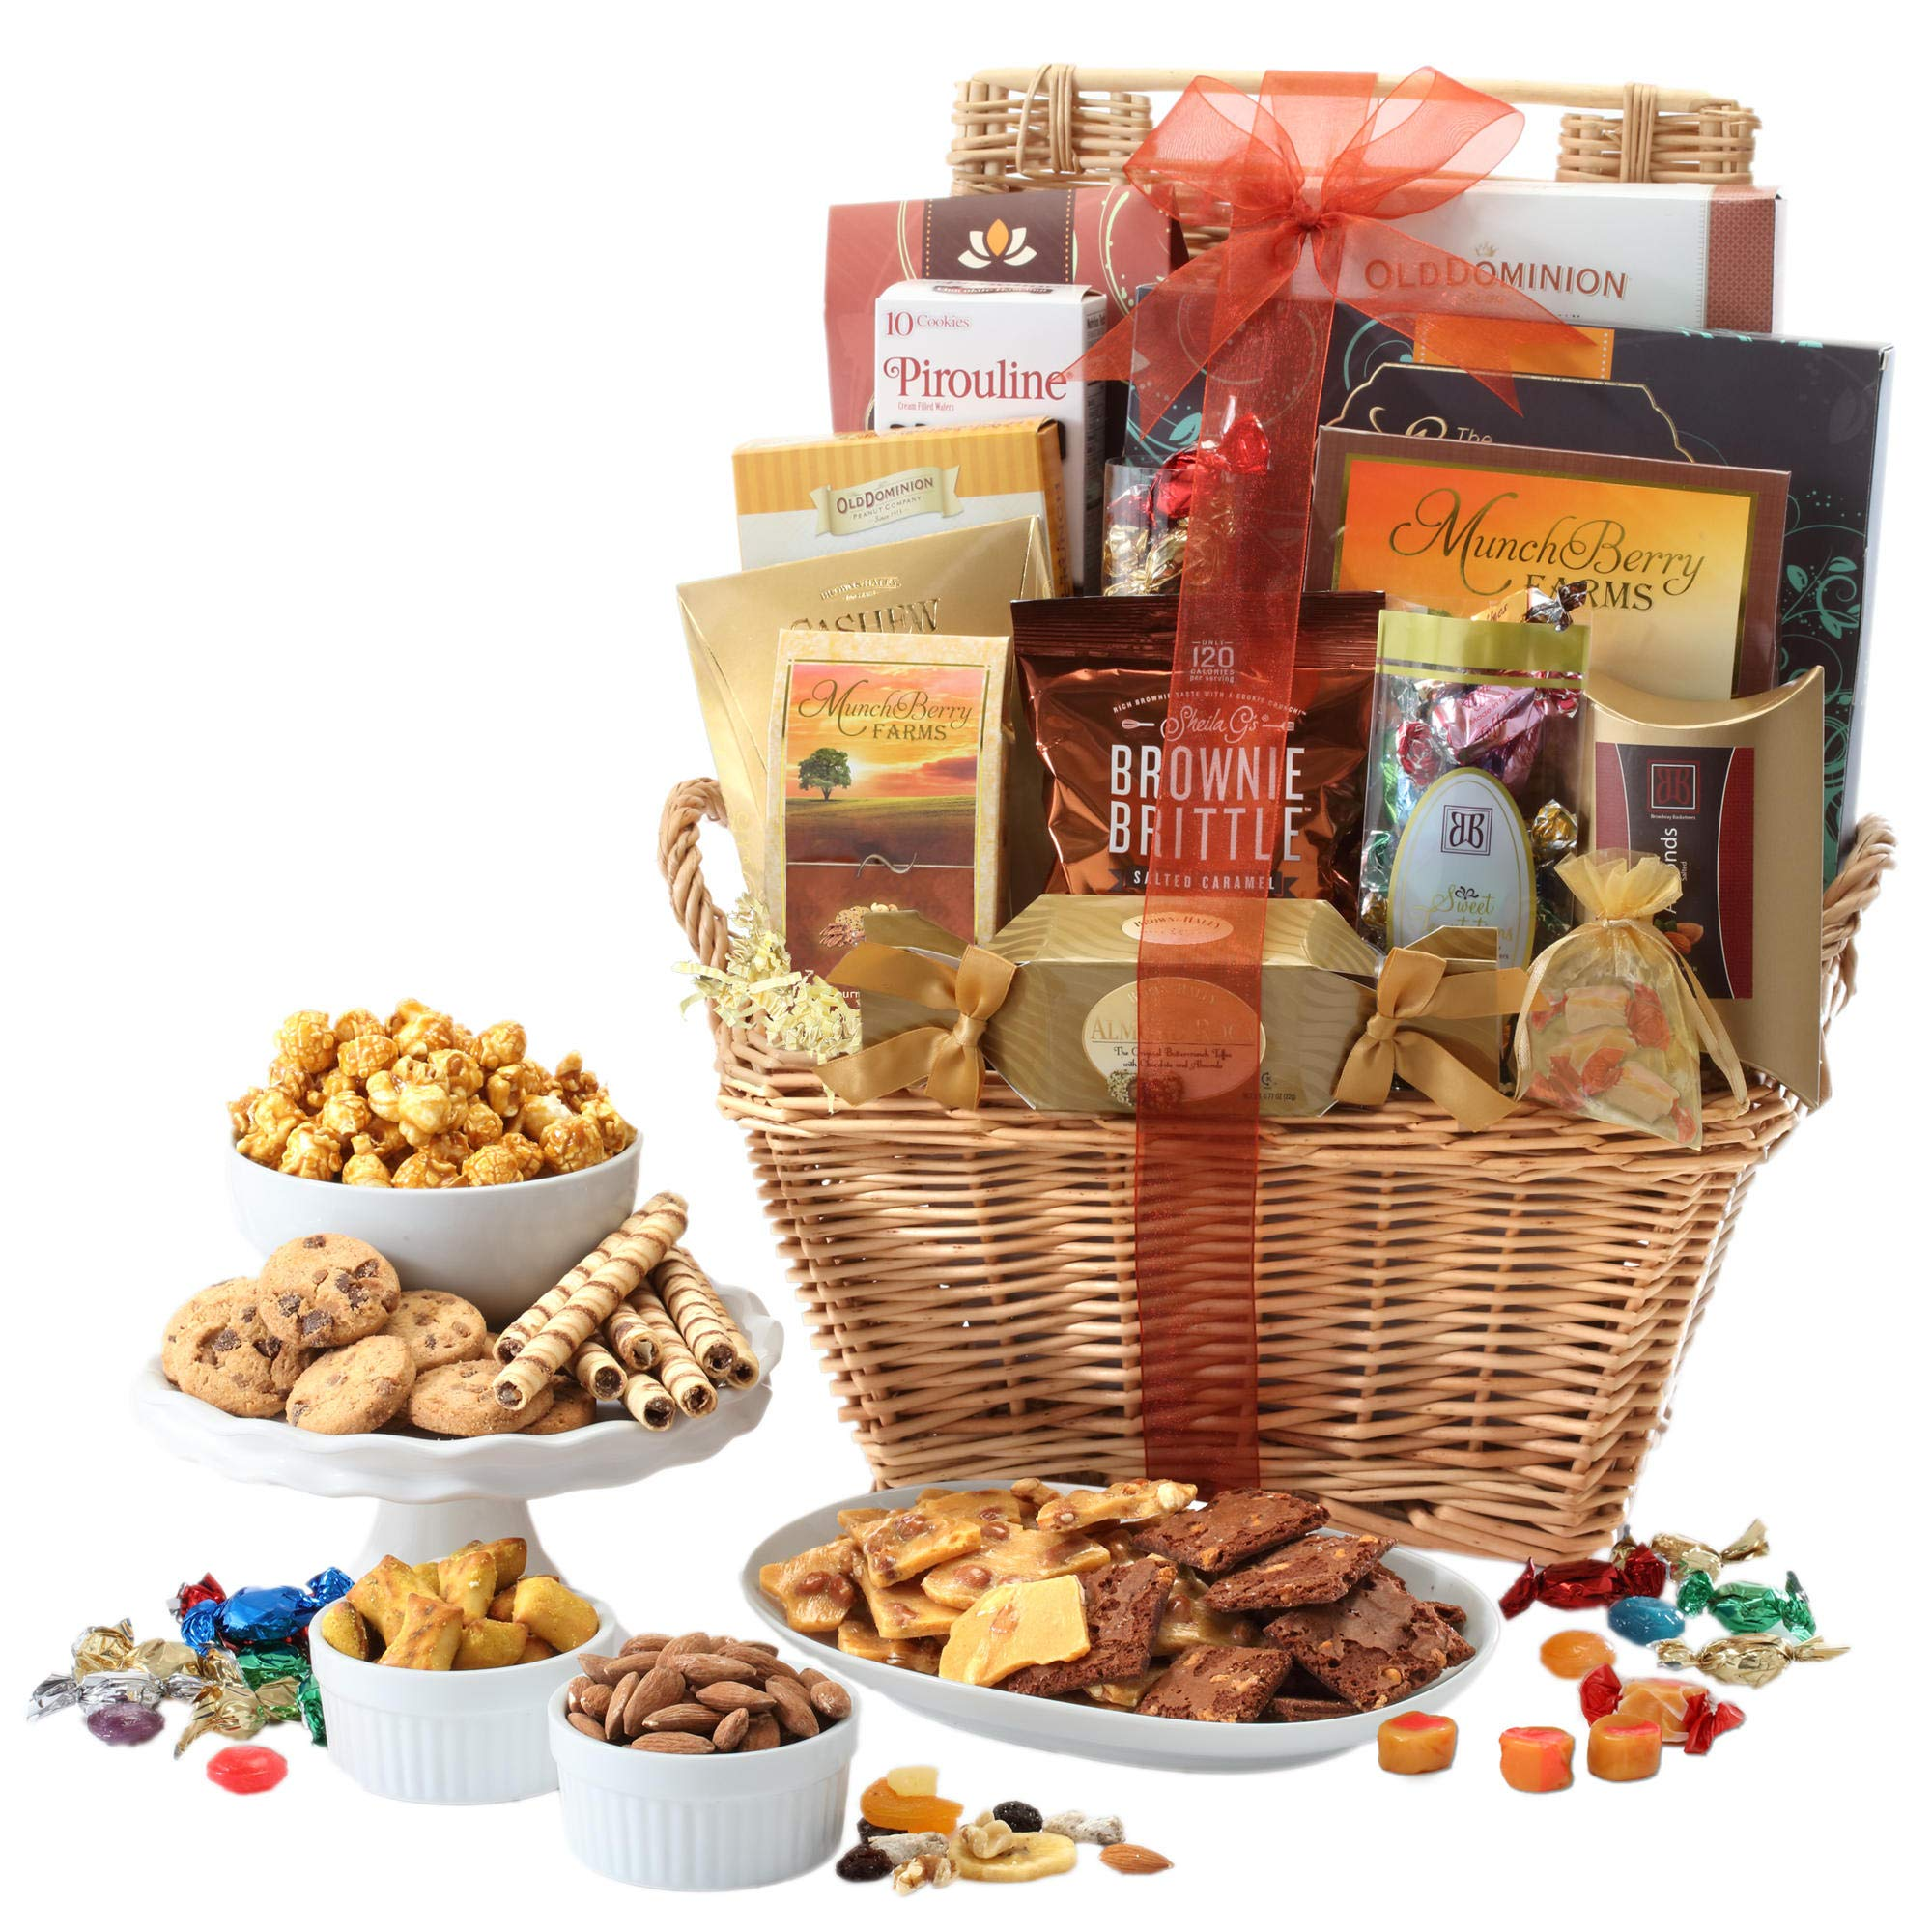 Broadway Basketeers Gift Basket Deluxe with Chocolates, Lindt Truffles, Assorted Nuts, Gourmet Cookies, Seasoned Nuts, Sweets and More. by Broadway Basketeers